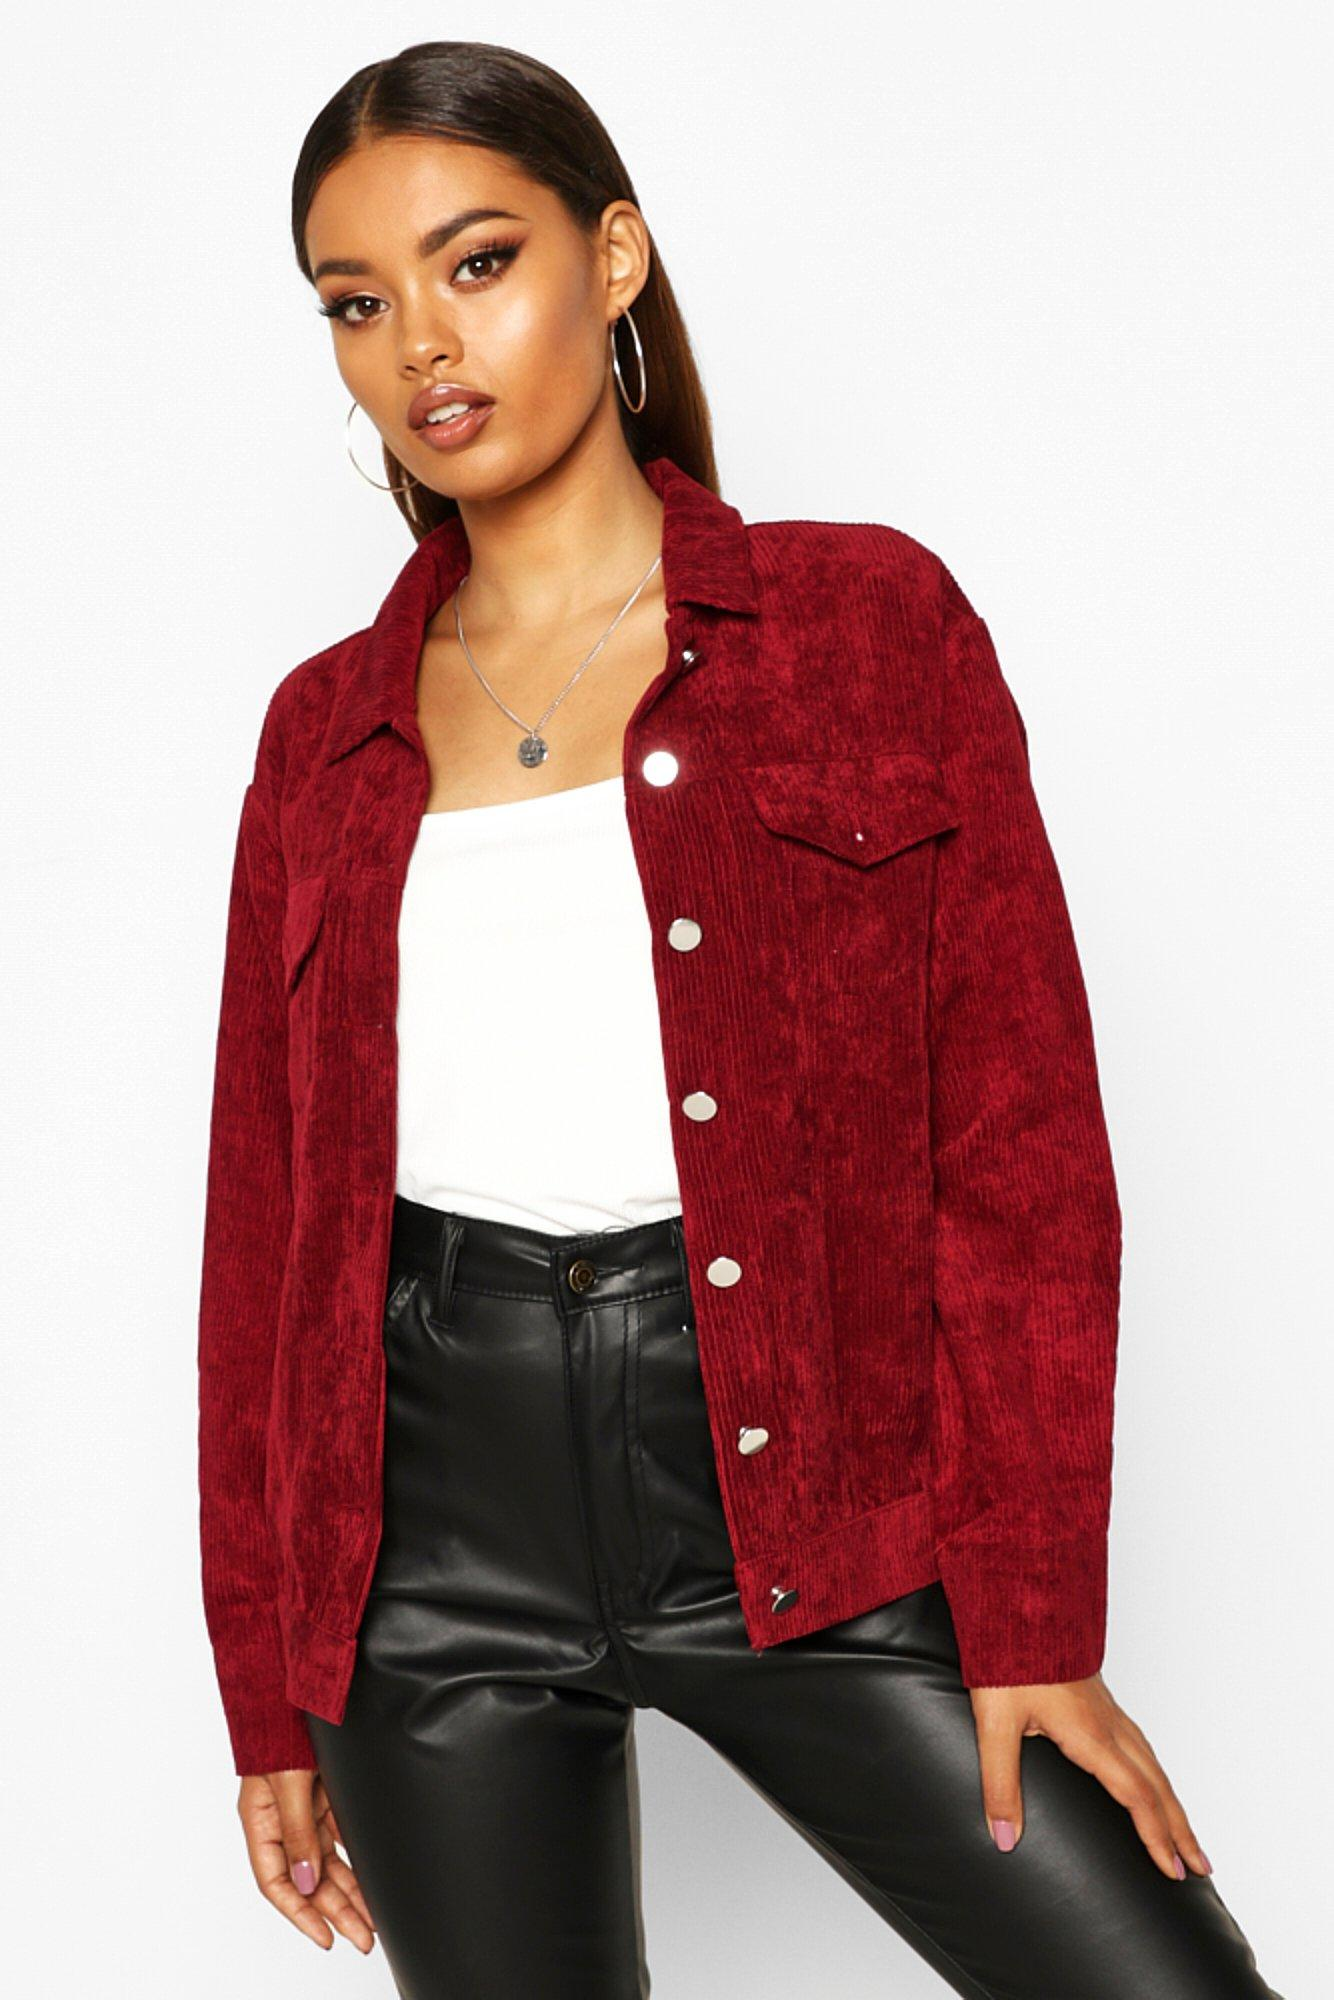 boohoo Womens Oversize Cord Jacket - Red - 10, Red